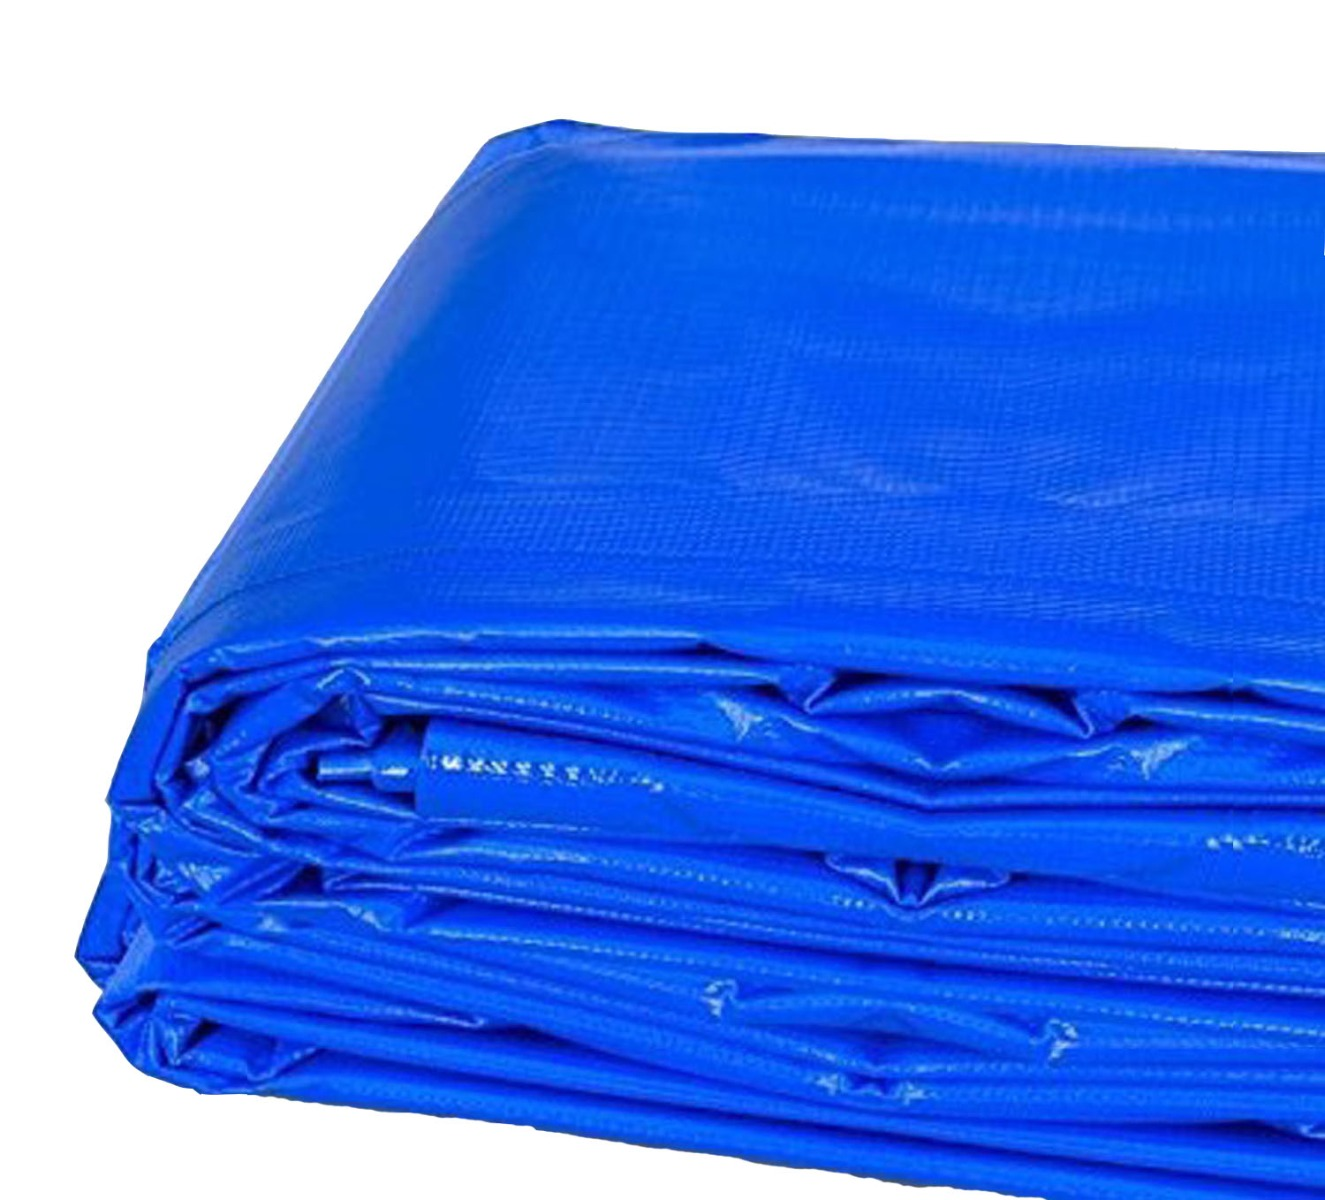 Reinforced Rip-Stop with Grommets Every 3 Feet. Multi Purpose Waterproof Tarpaulin Blue Poly Tarp Cover 5 Mil Thick Bull Tarp 20X20 UV Resistant